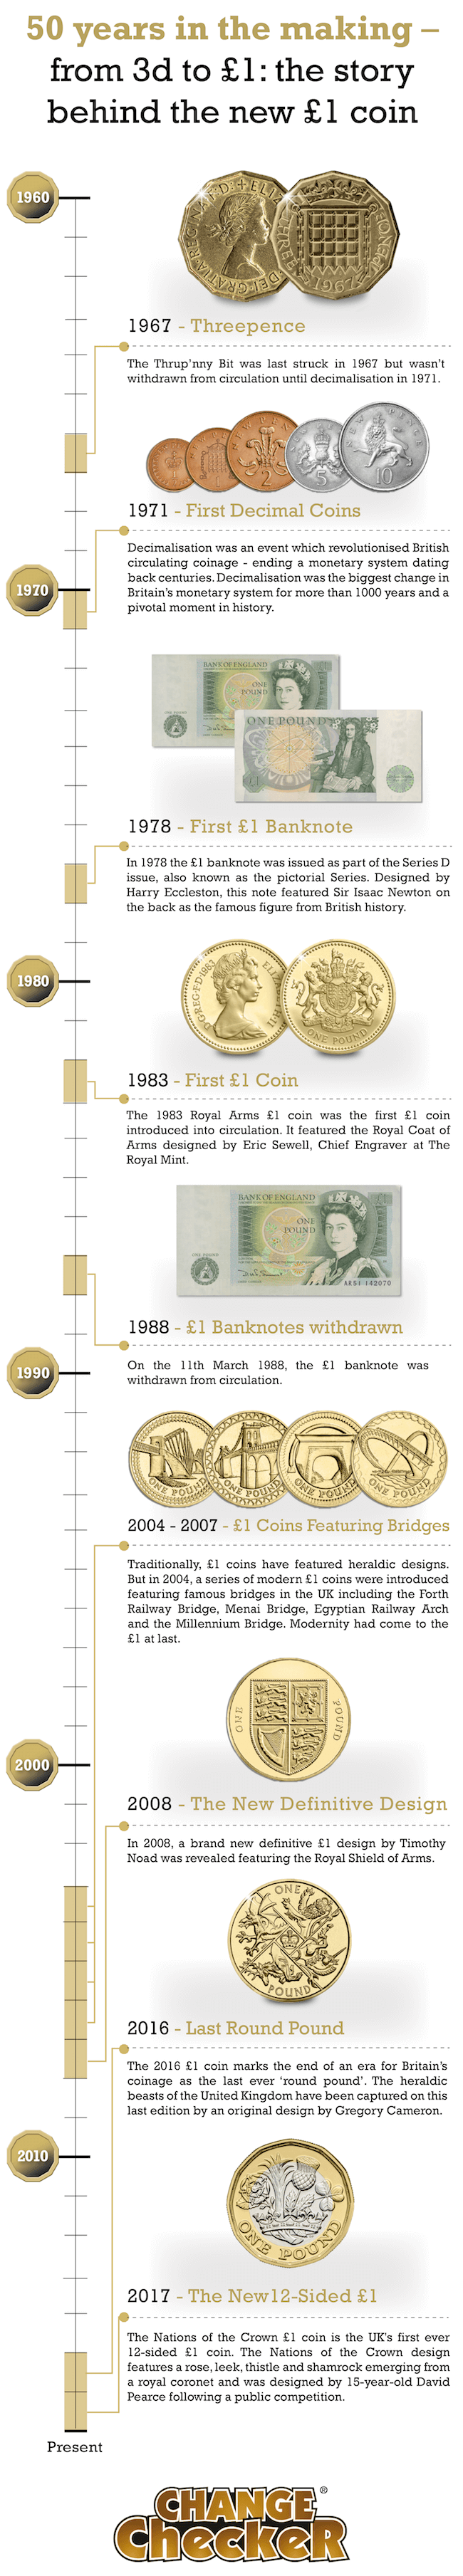 50 years in the making amends 0112345 - 50 years in the making – from 3d to £1: the story behind the new £1 coin